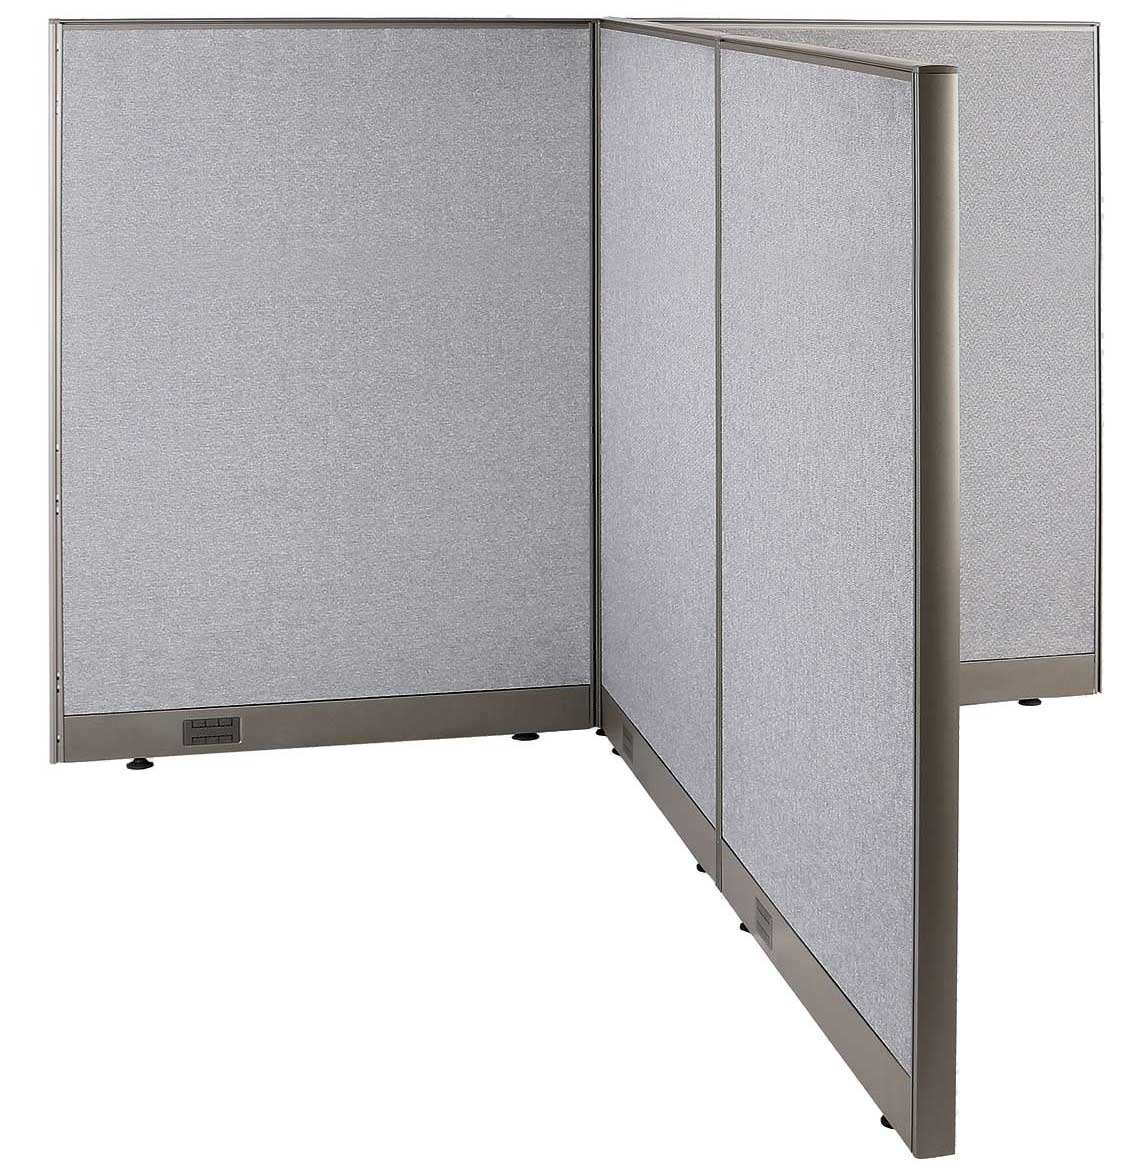 GOF T-Shaped Freestanding Partition 72d x 72w x 60h / Office, Room Divider